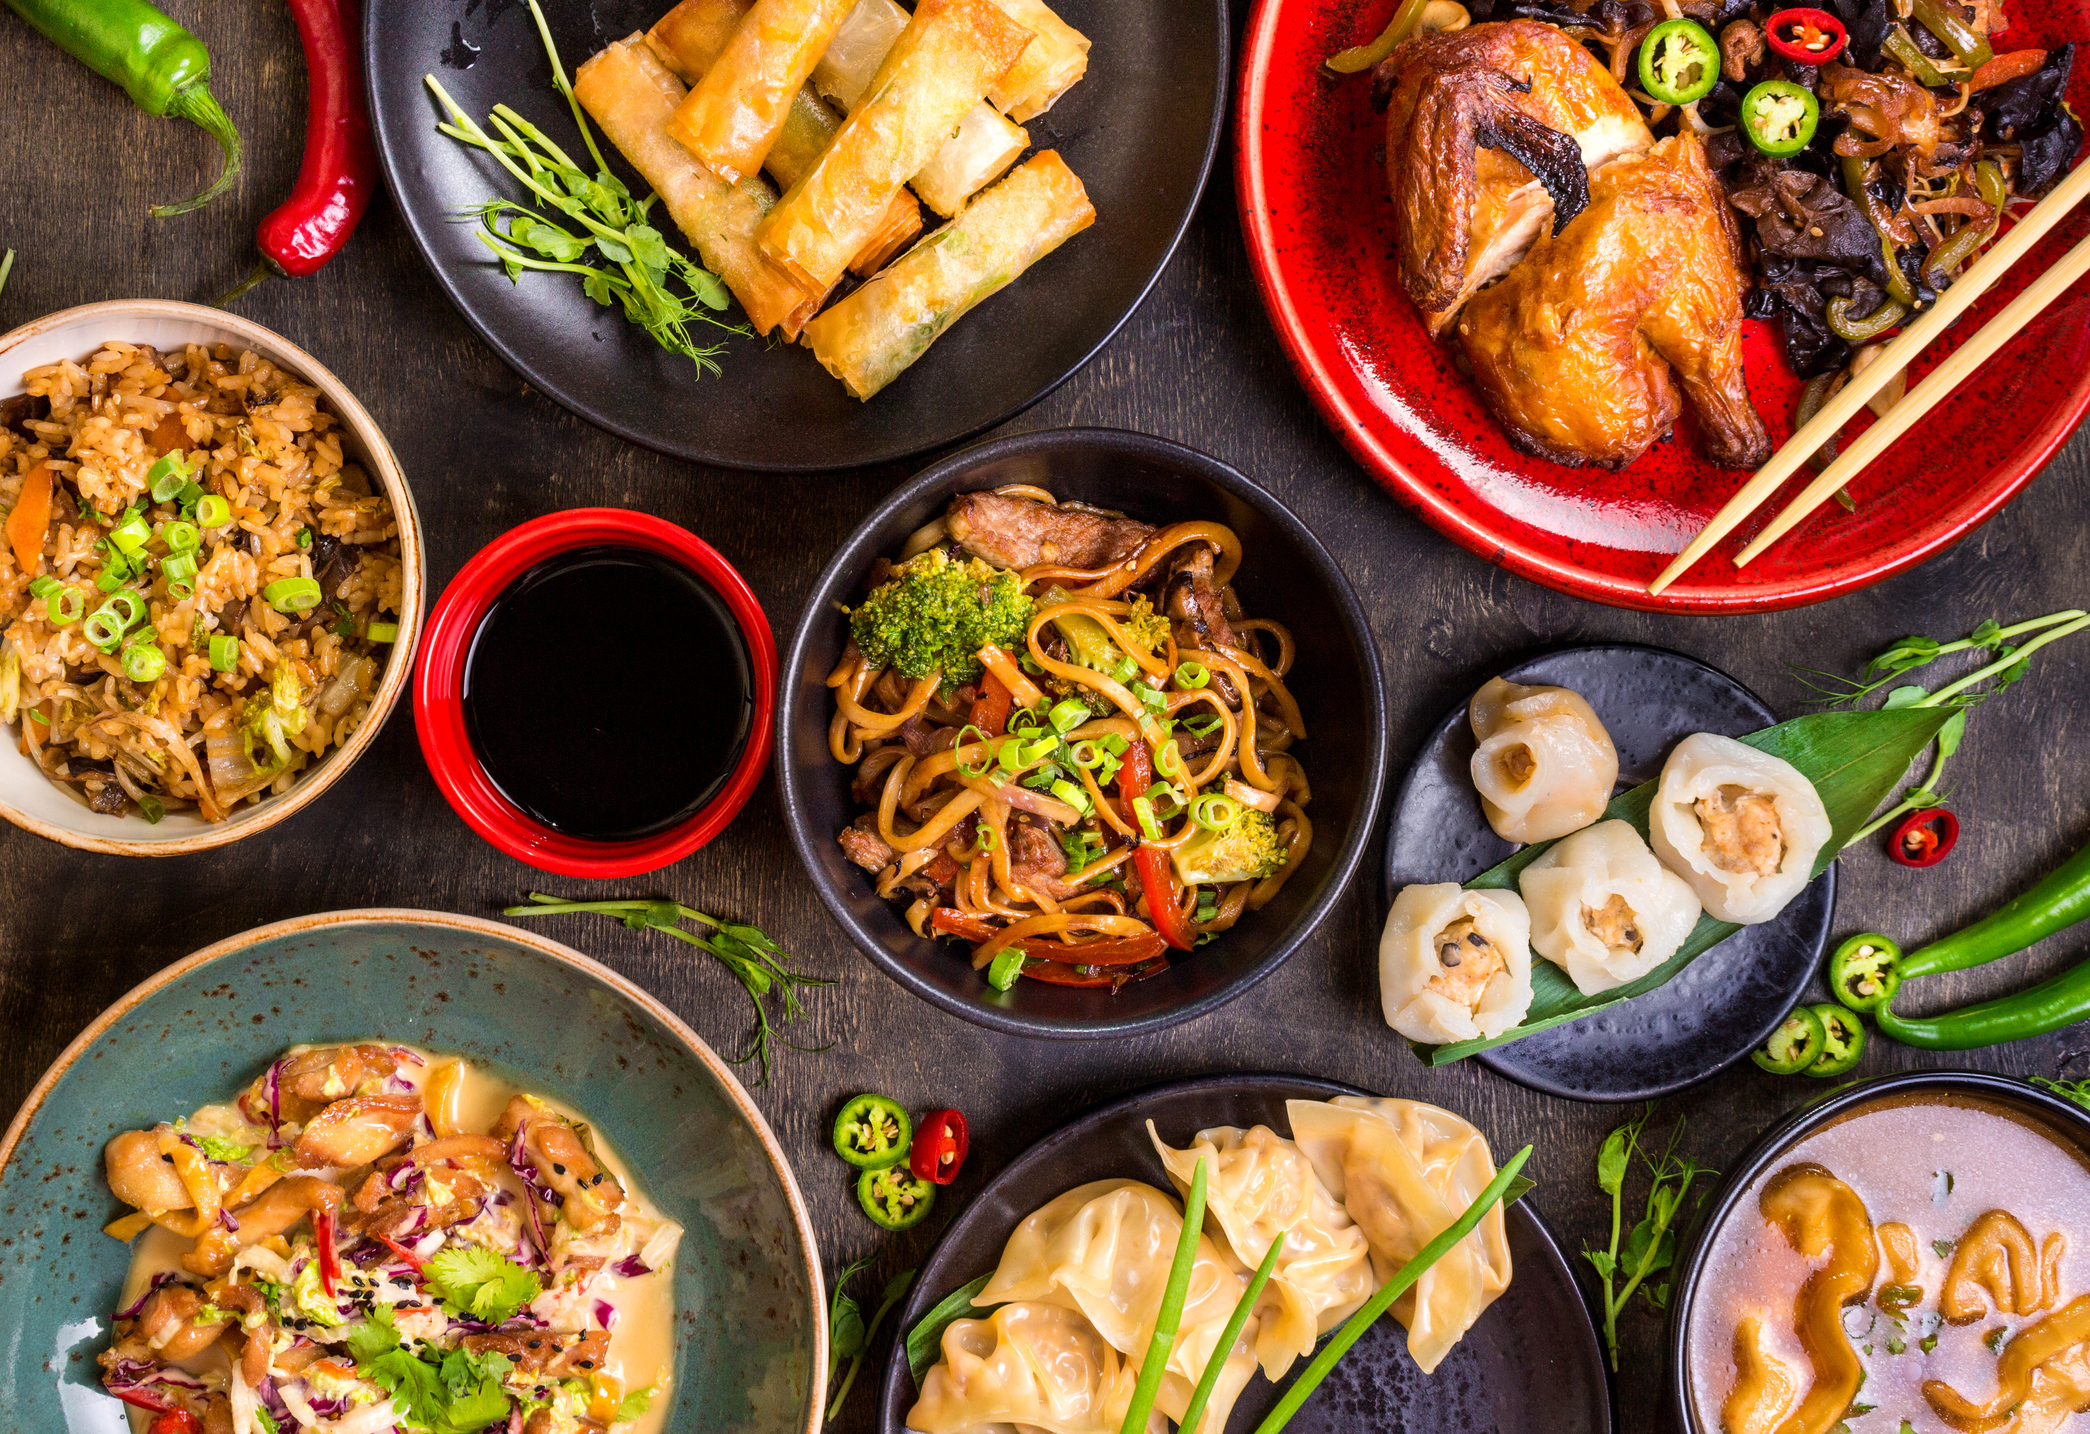 For the Chinese the most important meal of the year is the New Year's Eve reunion dinner. That's when all members of a family get together